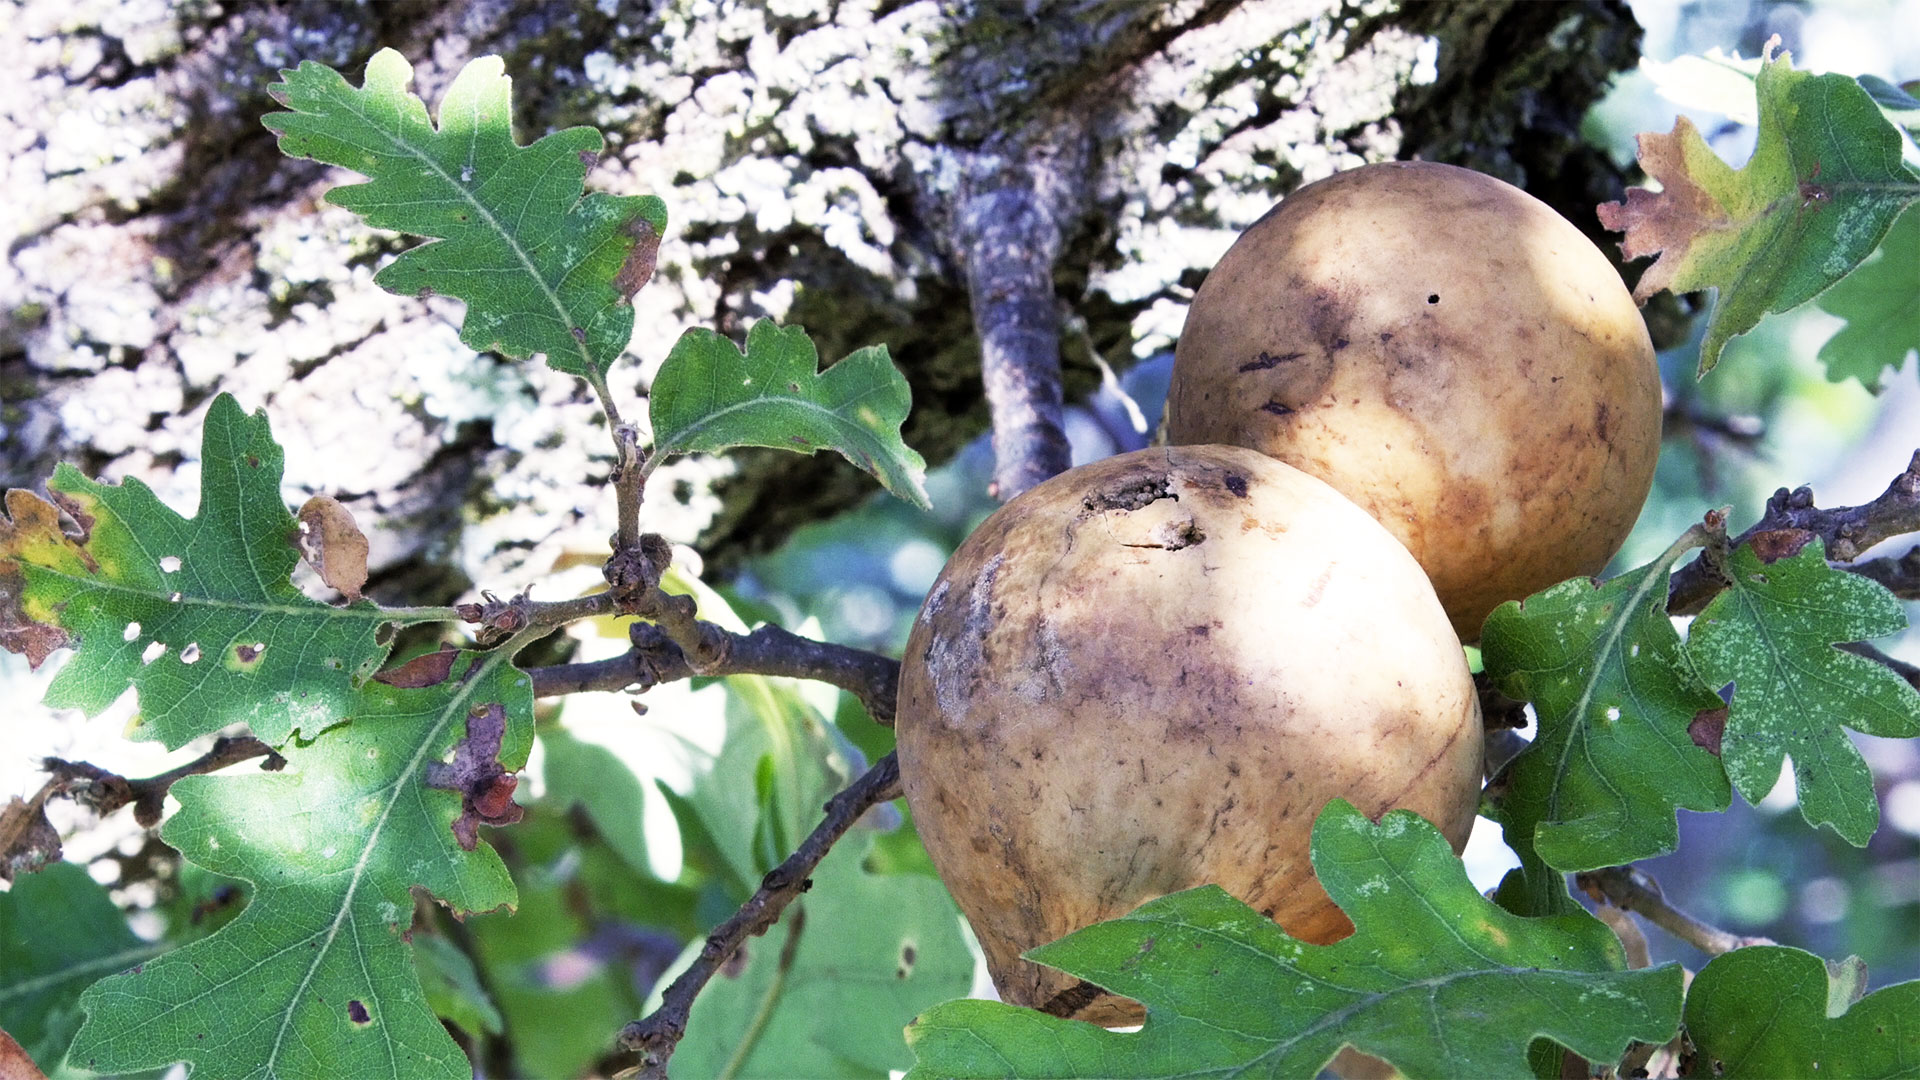 Oak apple galls, from the California Oak Gall Wasp (Andricus quercuscalifornicus).